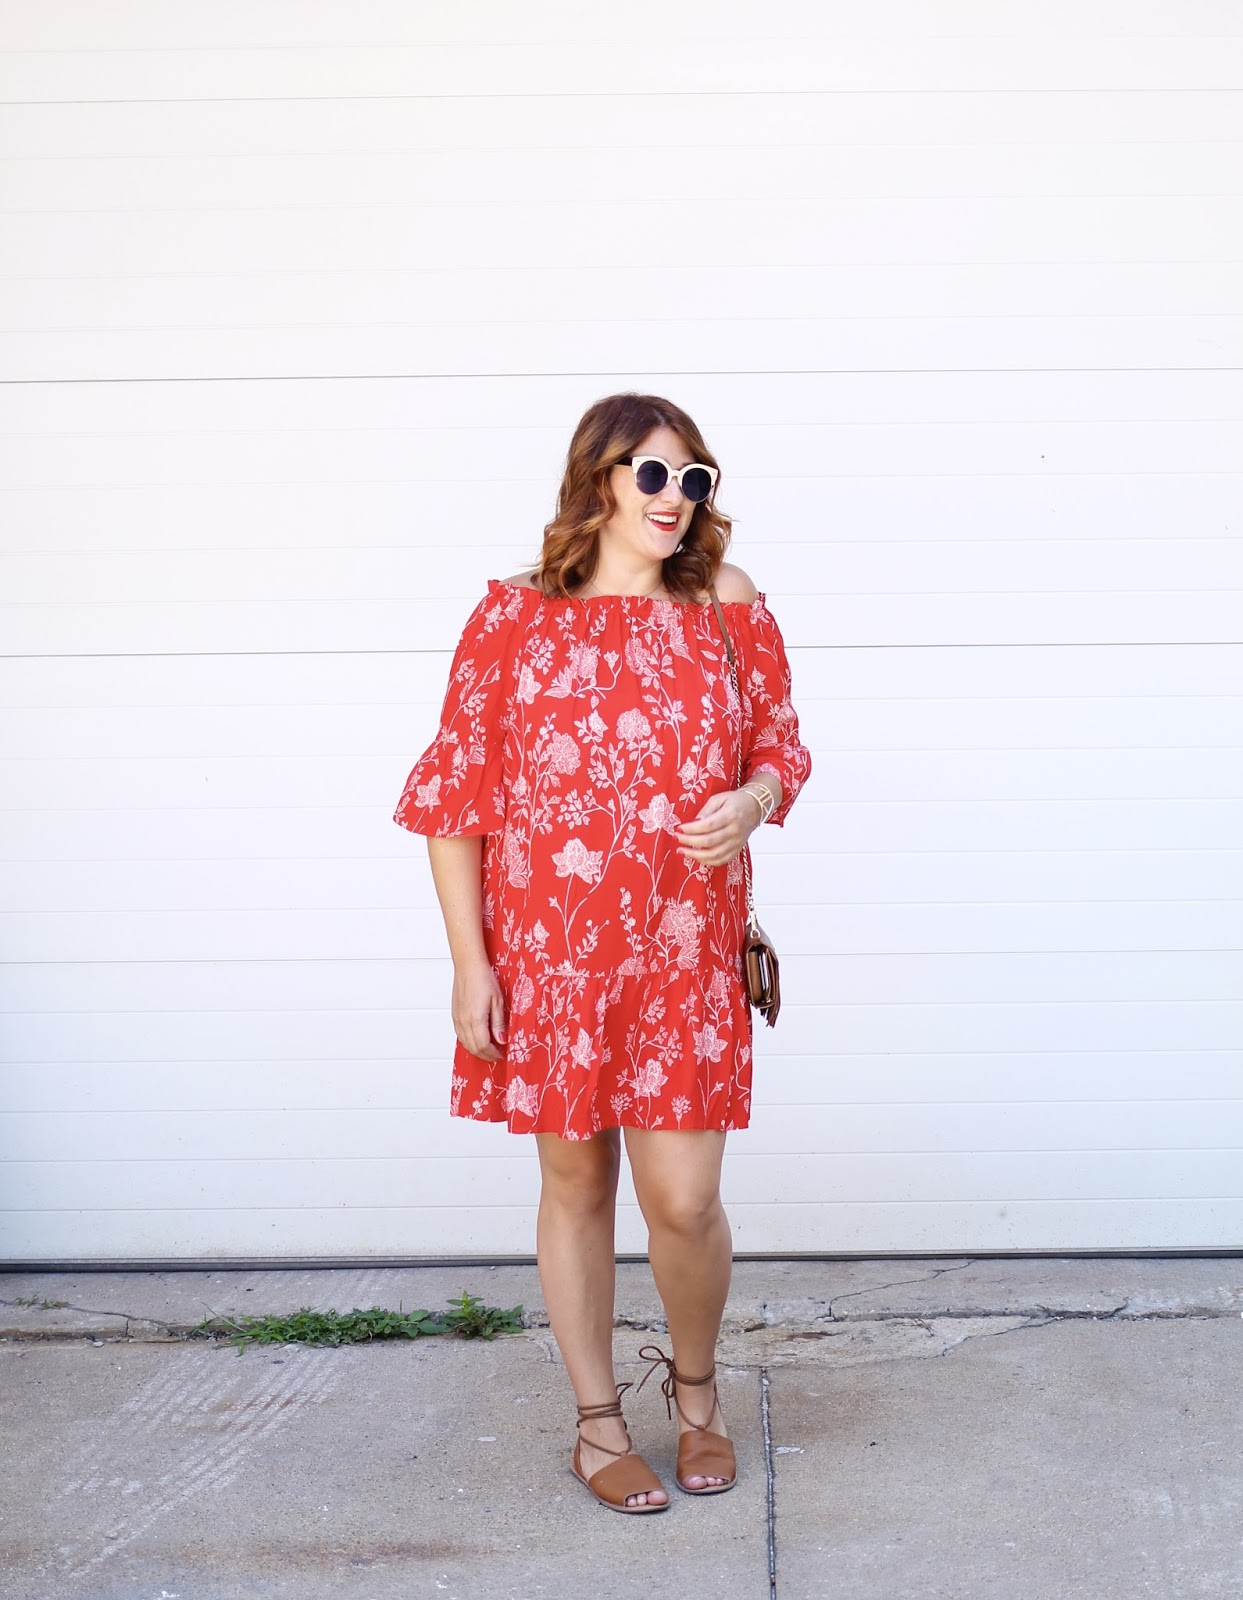 maternity style, red hair, off the shoulder, casual outfit